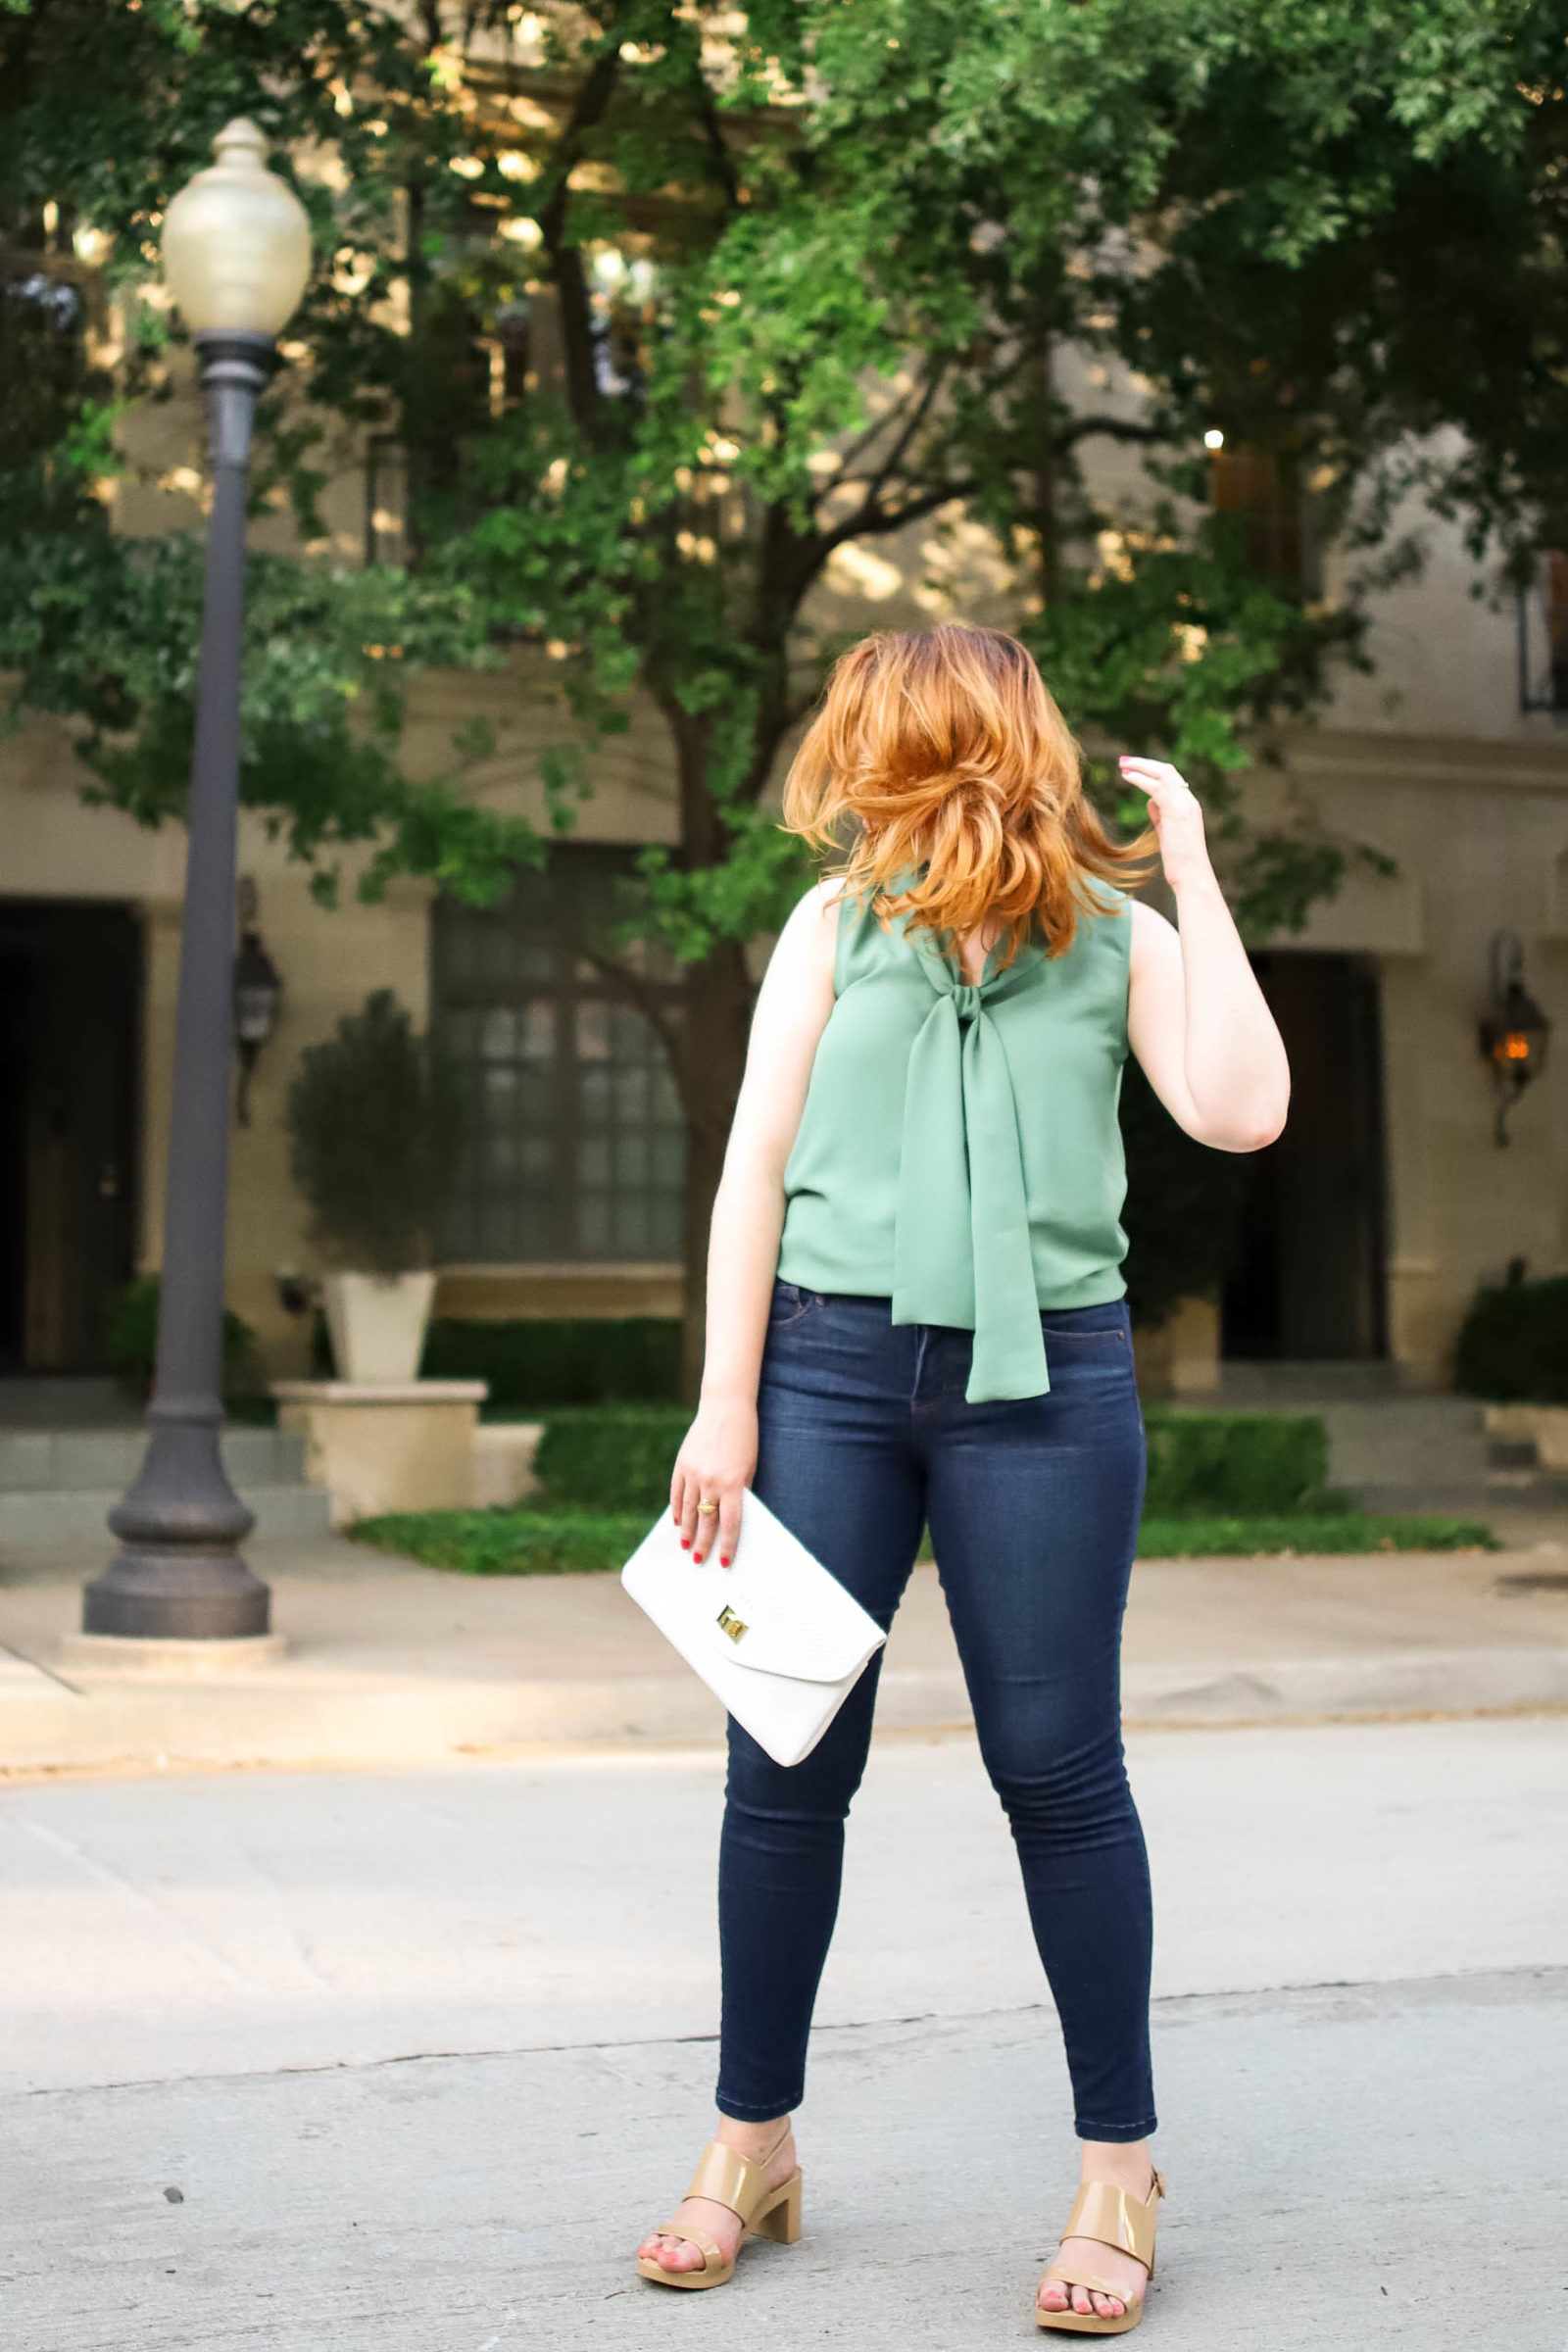 What is self care? Dallas blogger Amanda Kushner of Glitter & Spice answers this and shares how she created a weeknight self care routine that works specifically for her.